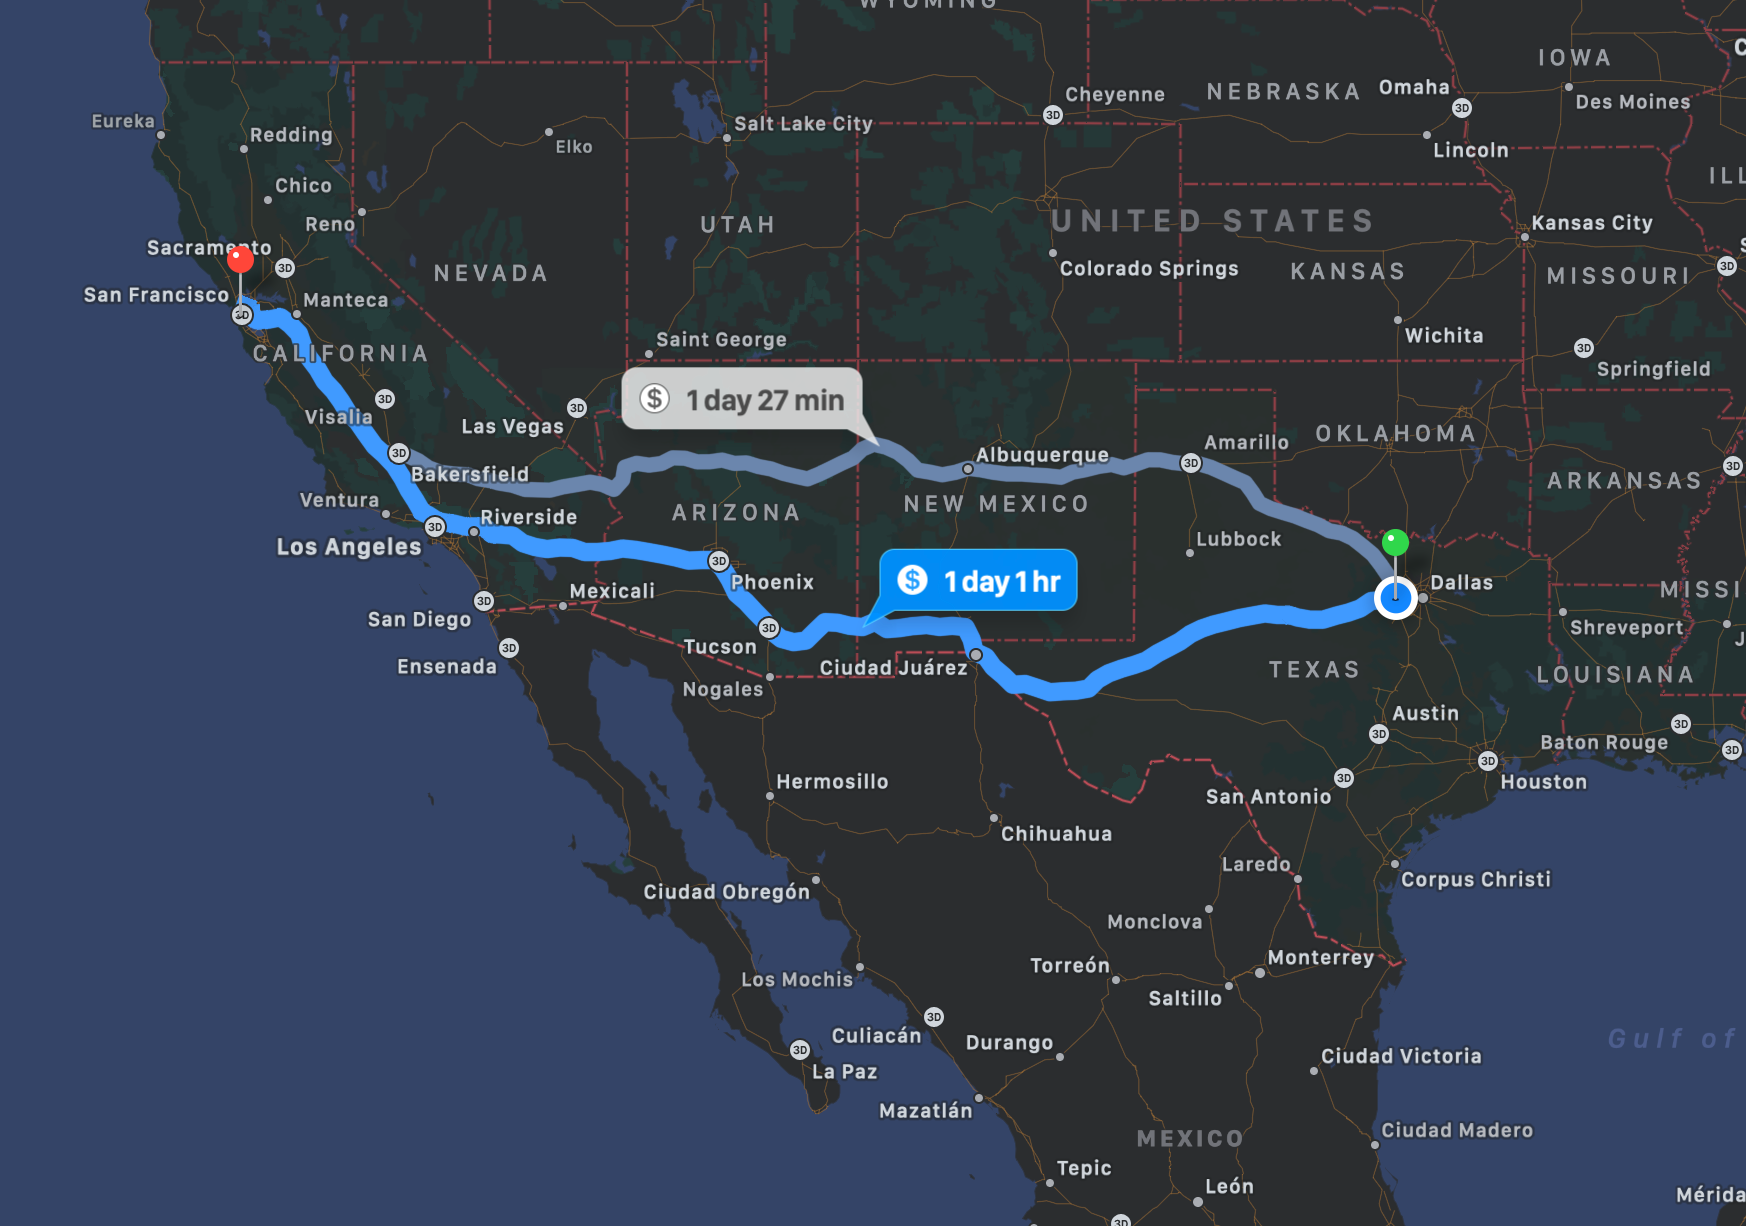 Fort Worth to San Francisco